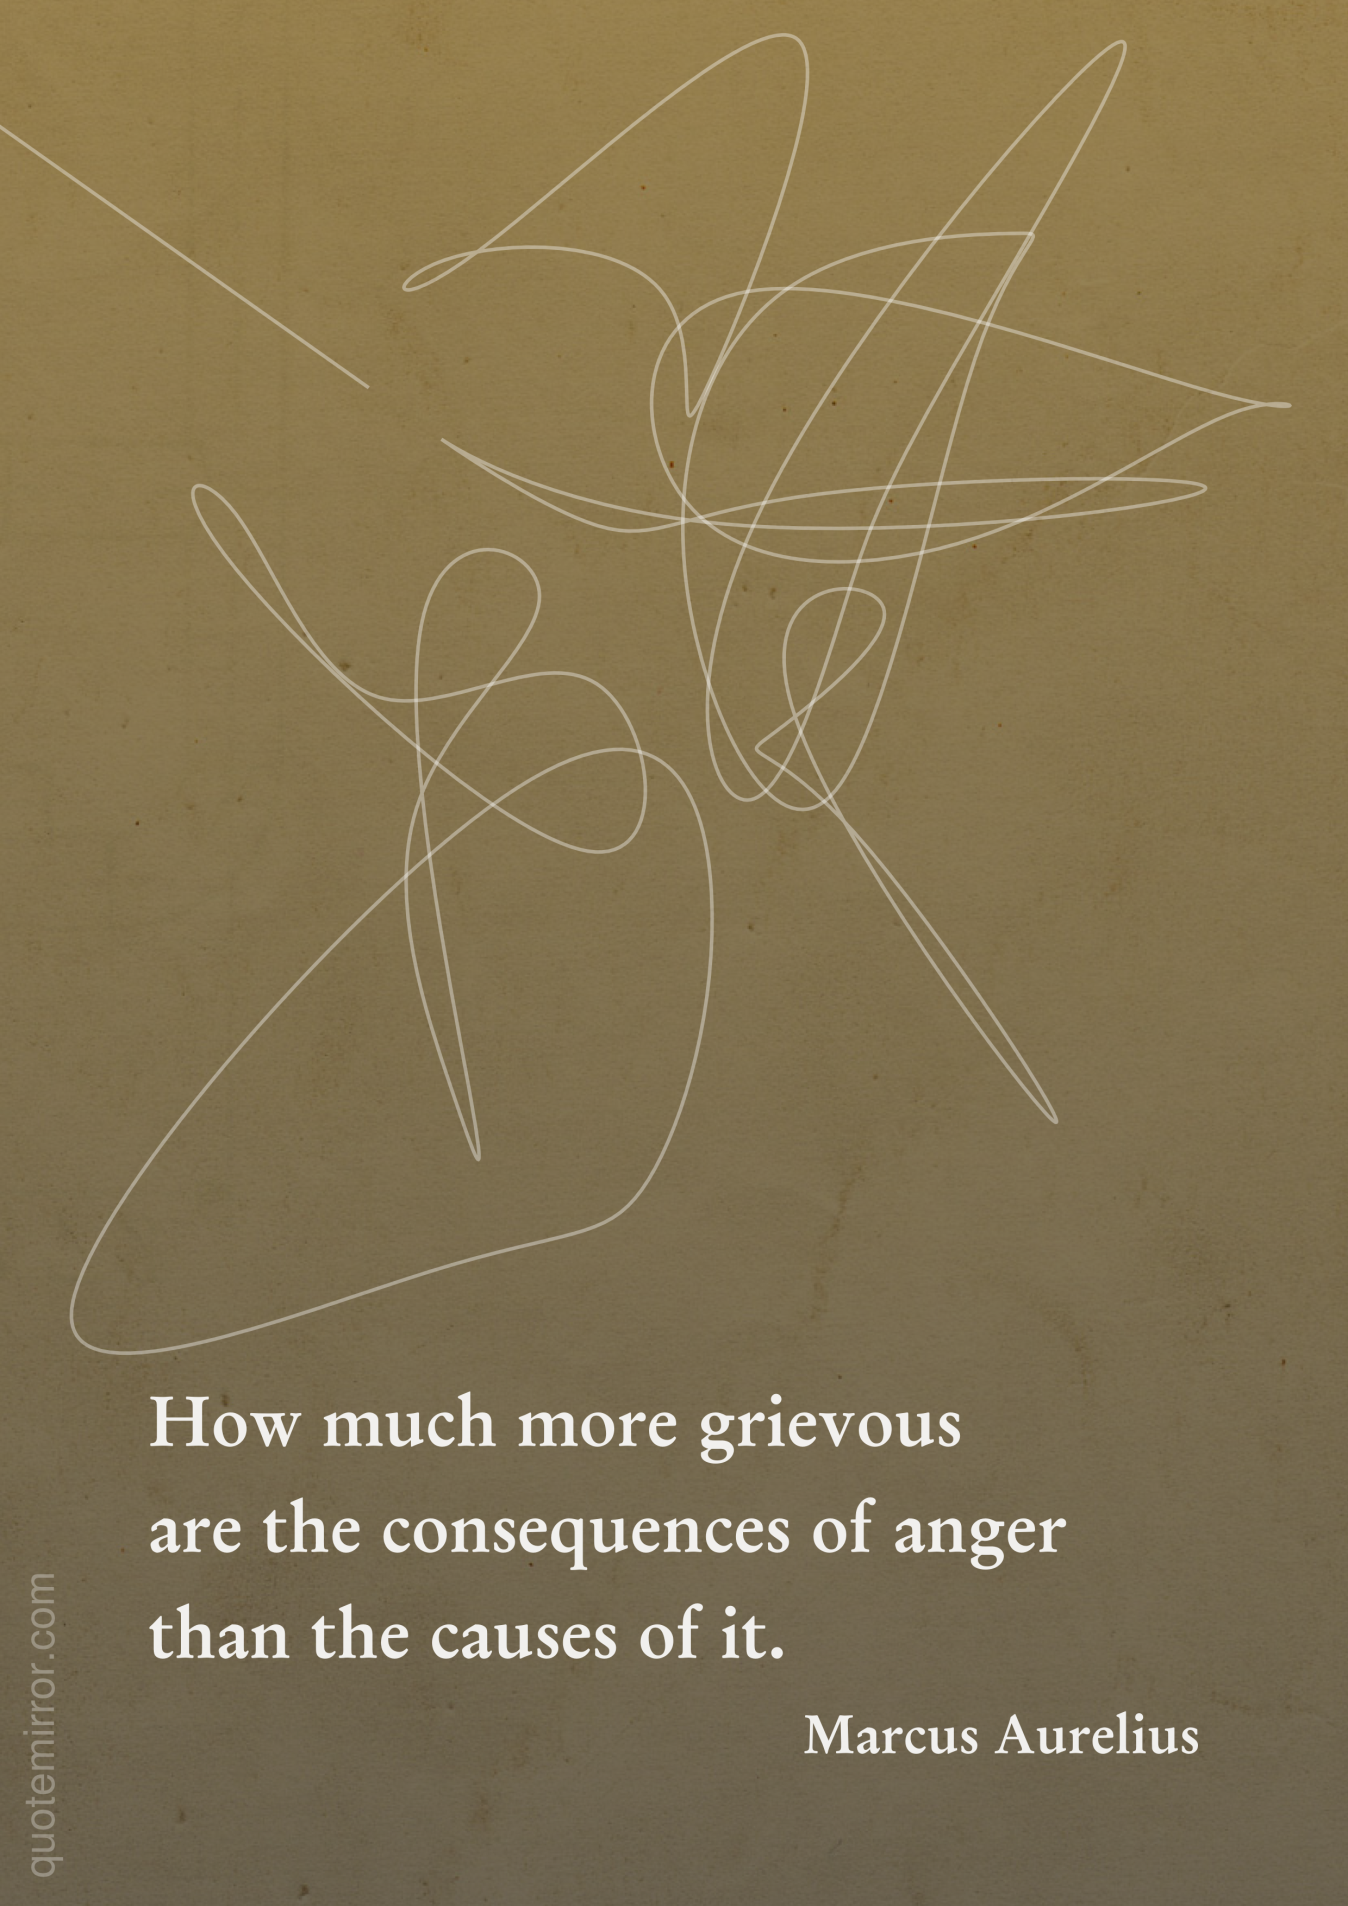 The consequences of anger | Anger quotes, Anger, Marcus ...